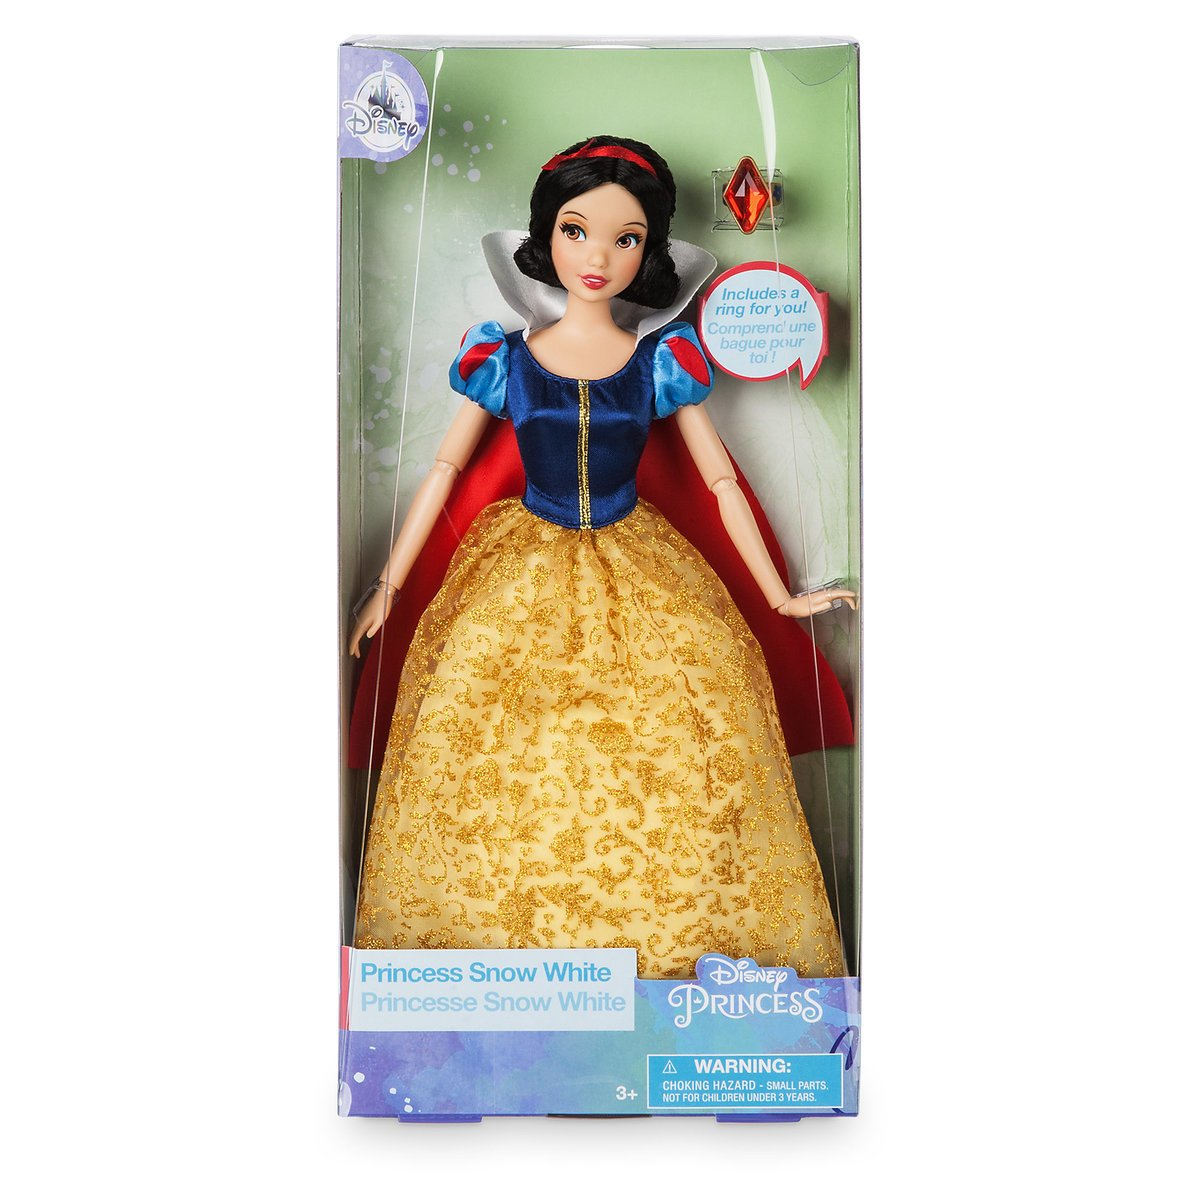 Disney Princess Snow White Classic Doll with Ring New with Box